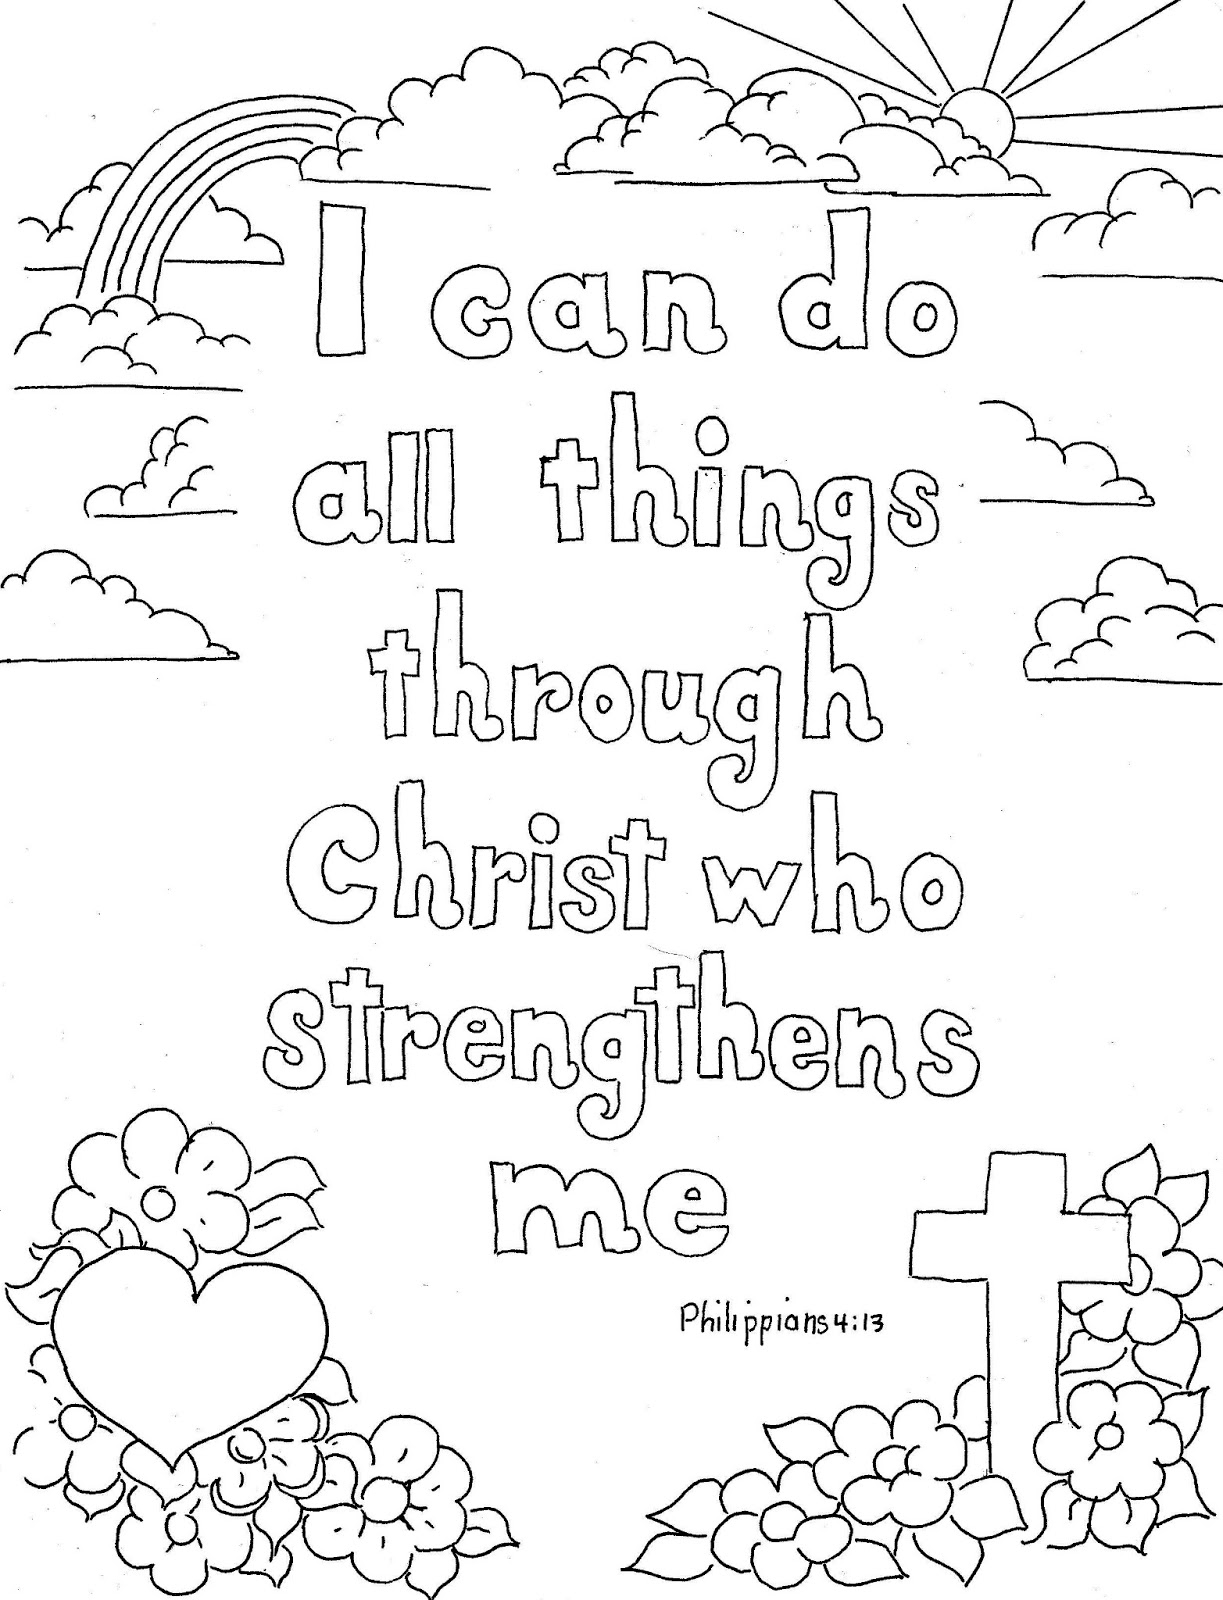 Bible Coloring Page Best Bible Coloring Pages for Sunday School Printable Of 28 Sunday School Coloring Pages for Preschoolers Jesus Loves Gallery